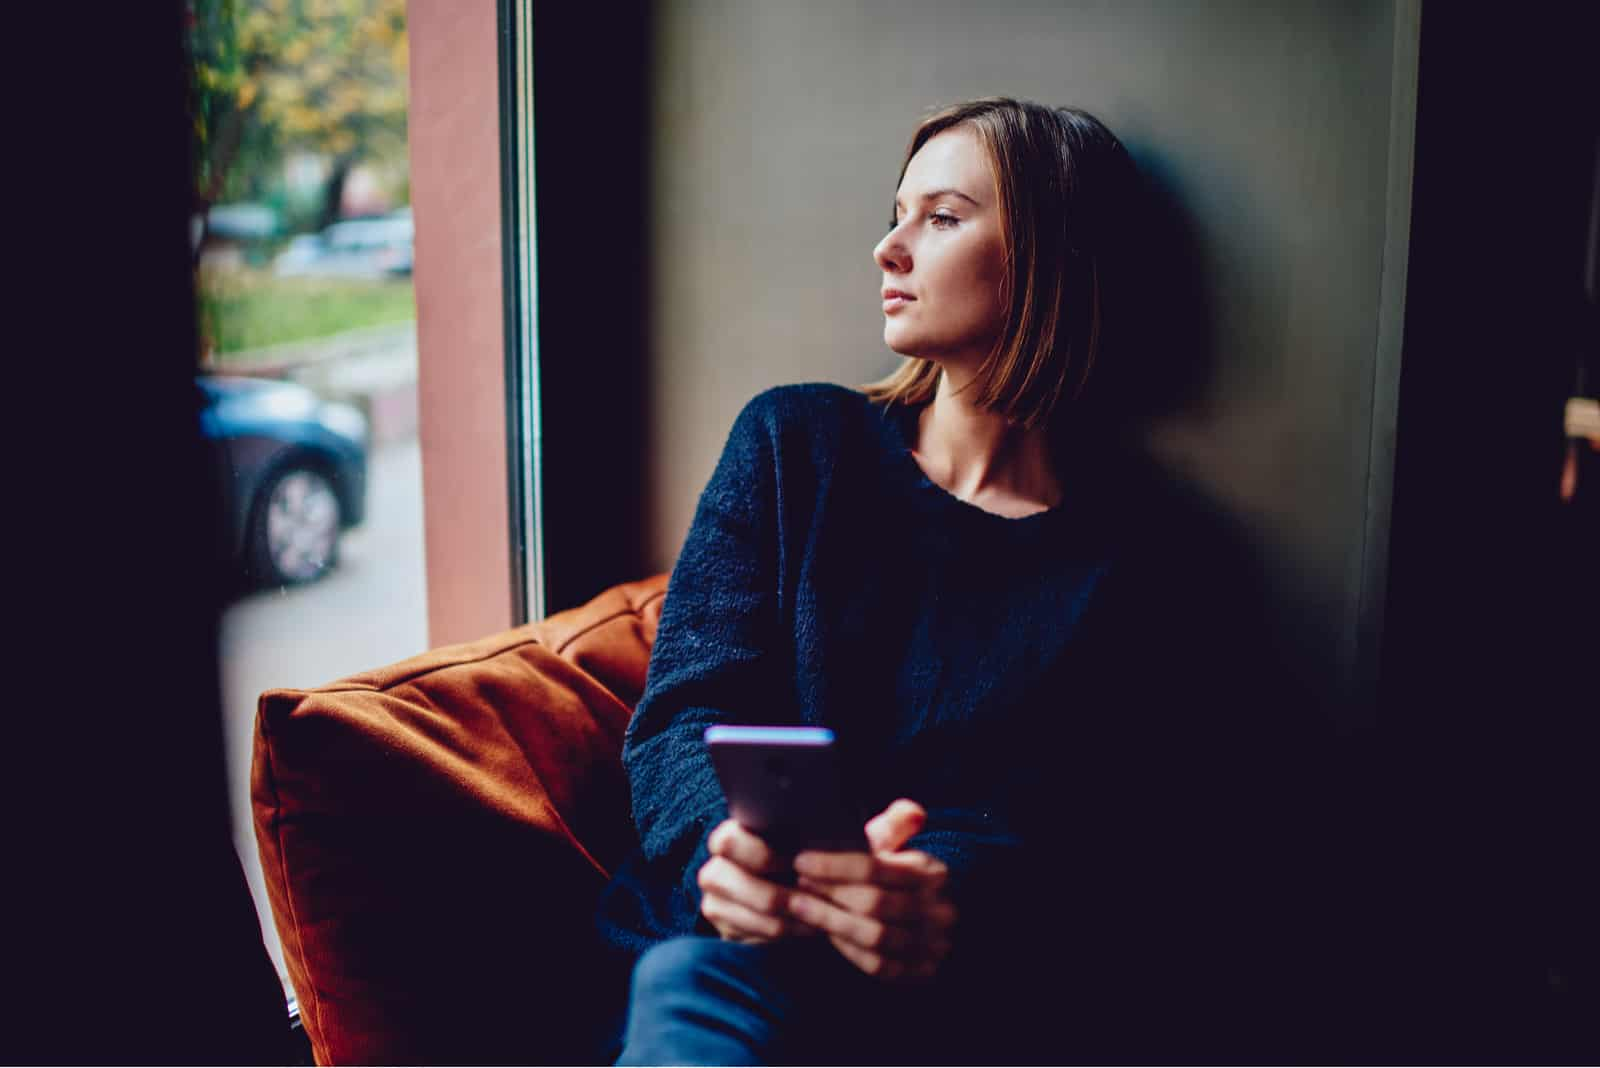 Thoughtful young woman holding her smartphone